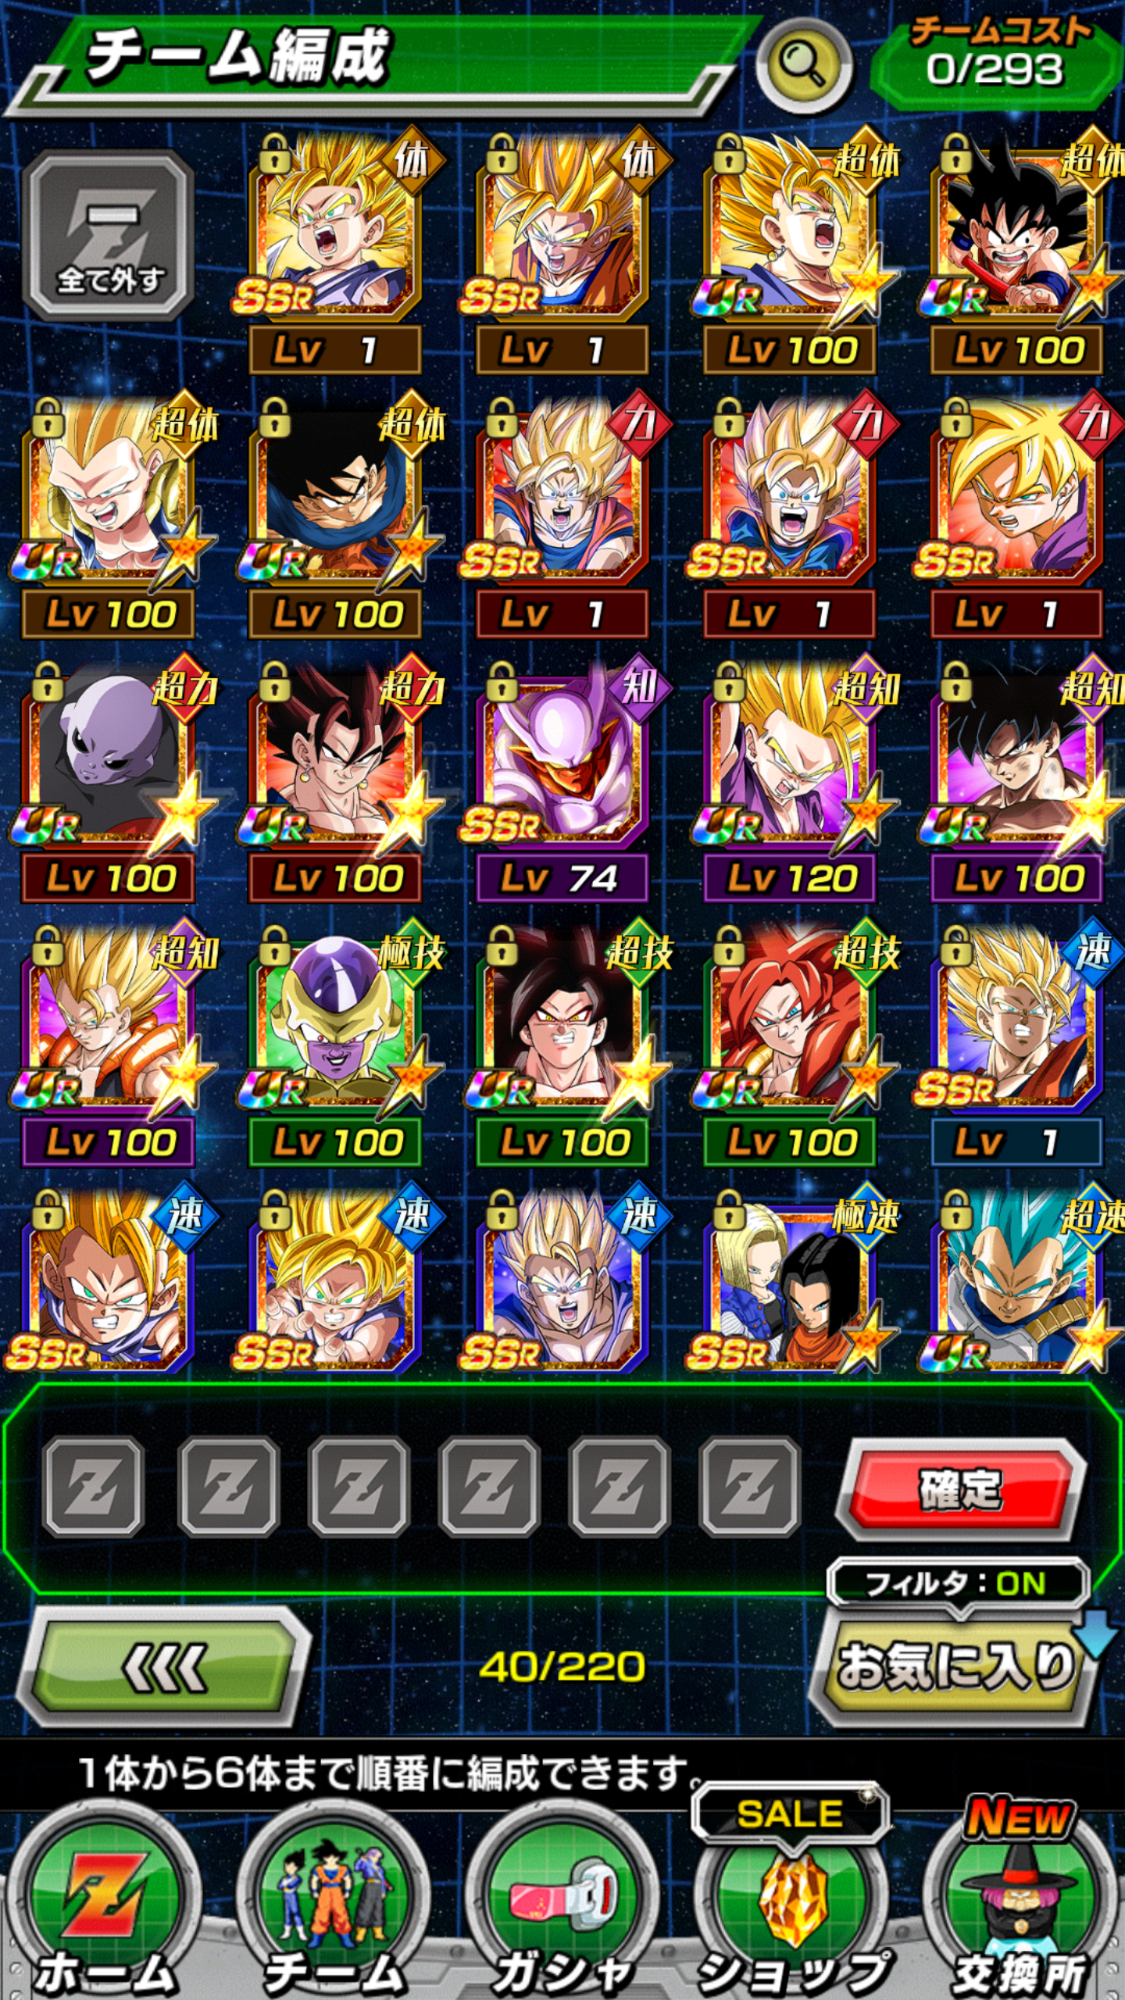 Any suggestions for a good team that gives good boost?!